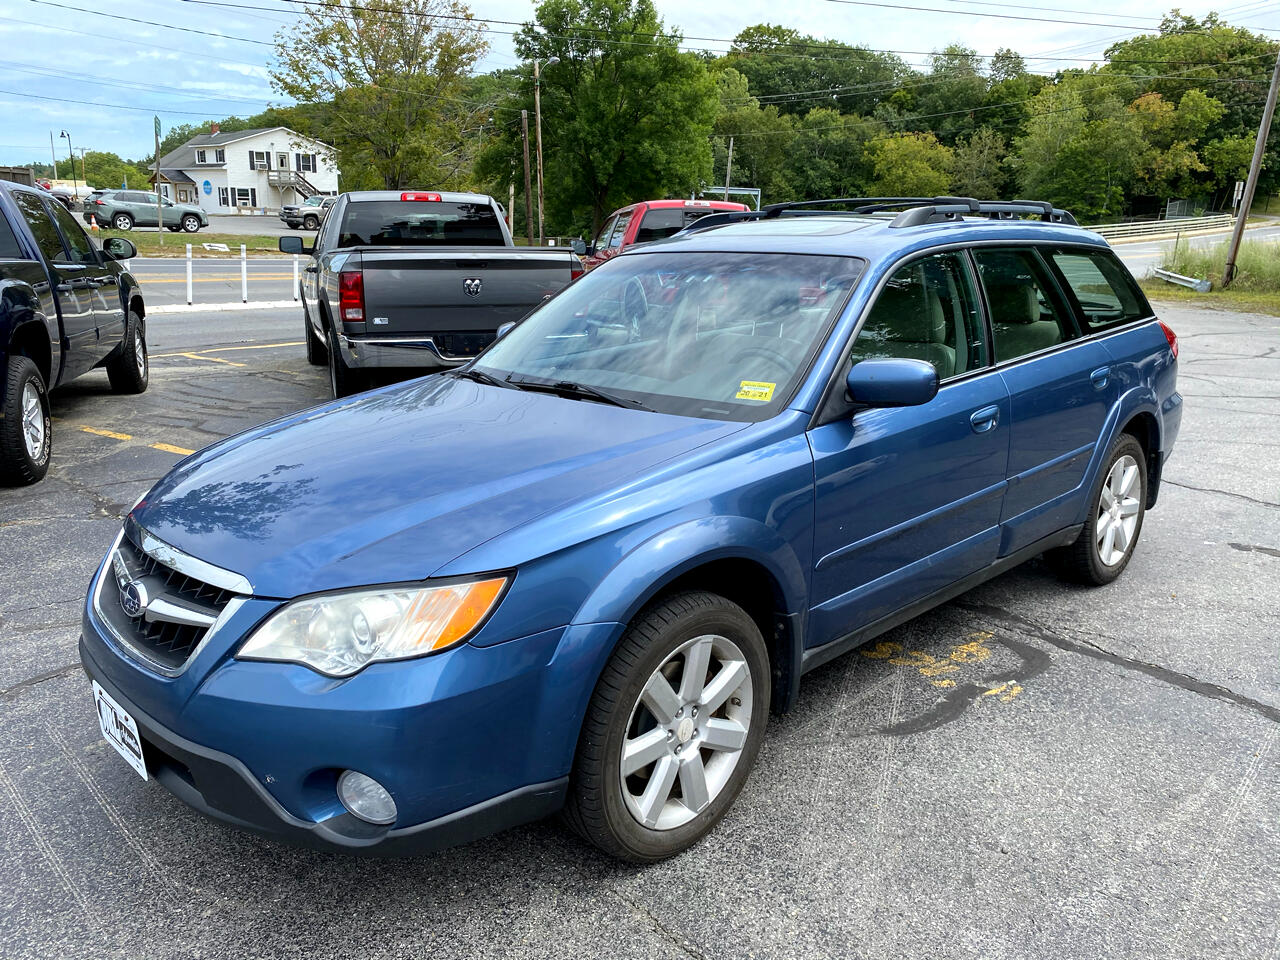 Subaru Outback (Natl) 4dr H4 Auto Ltd 2008